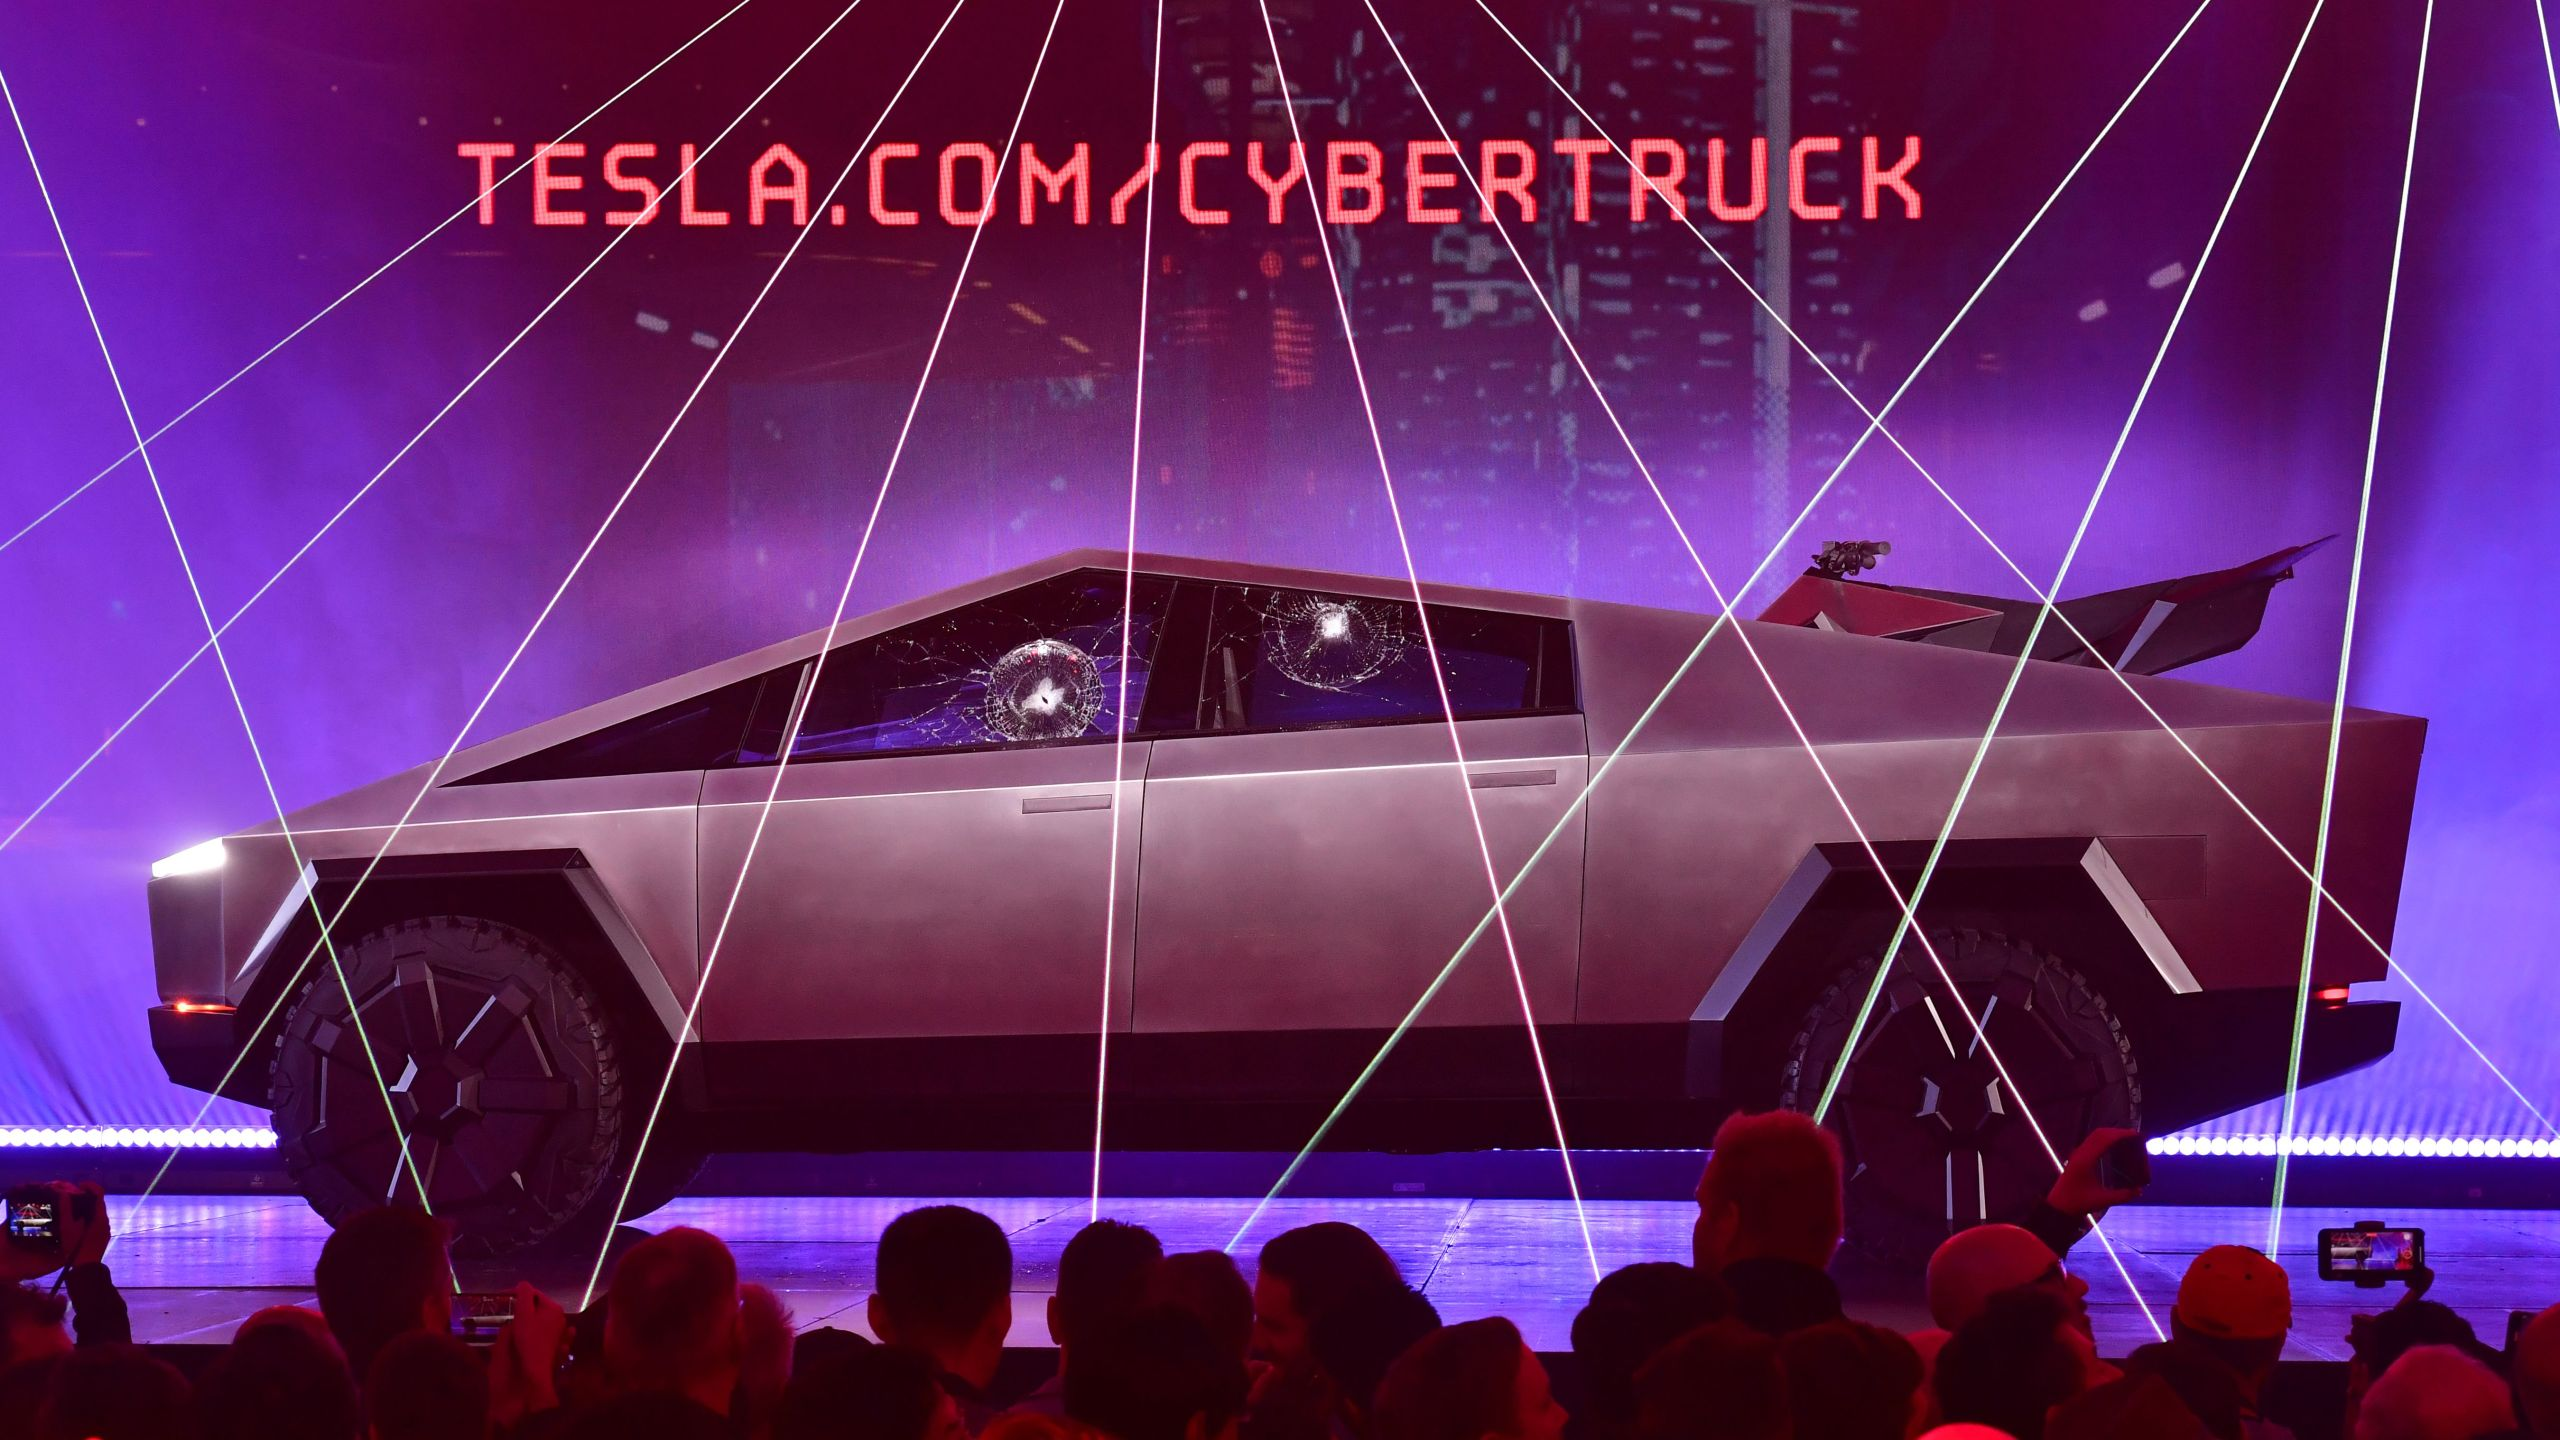 People take pictures of the newly unveiled all-electric battery-powered Tesla's Cybertruck with shattered windows after a failed resistance test, at Tesla Design Center in Hawthorne on Nov. 21, 2019. (Credit: FREDERIC J. BROWN/AFP via Getty Images)